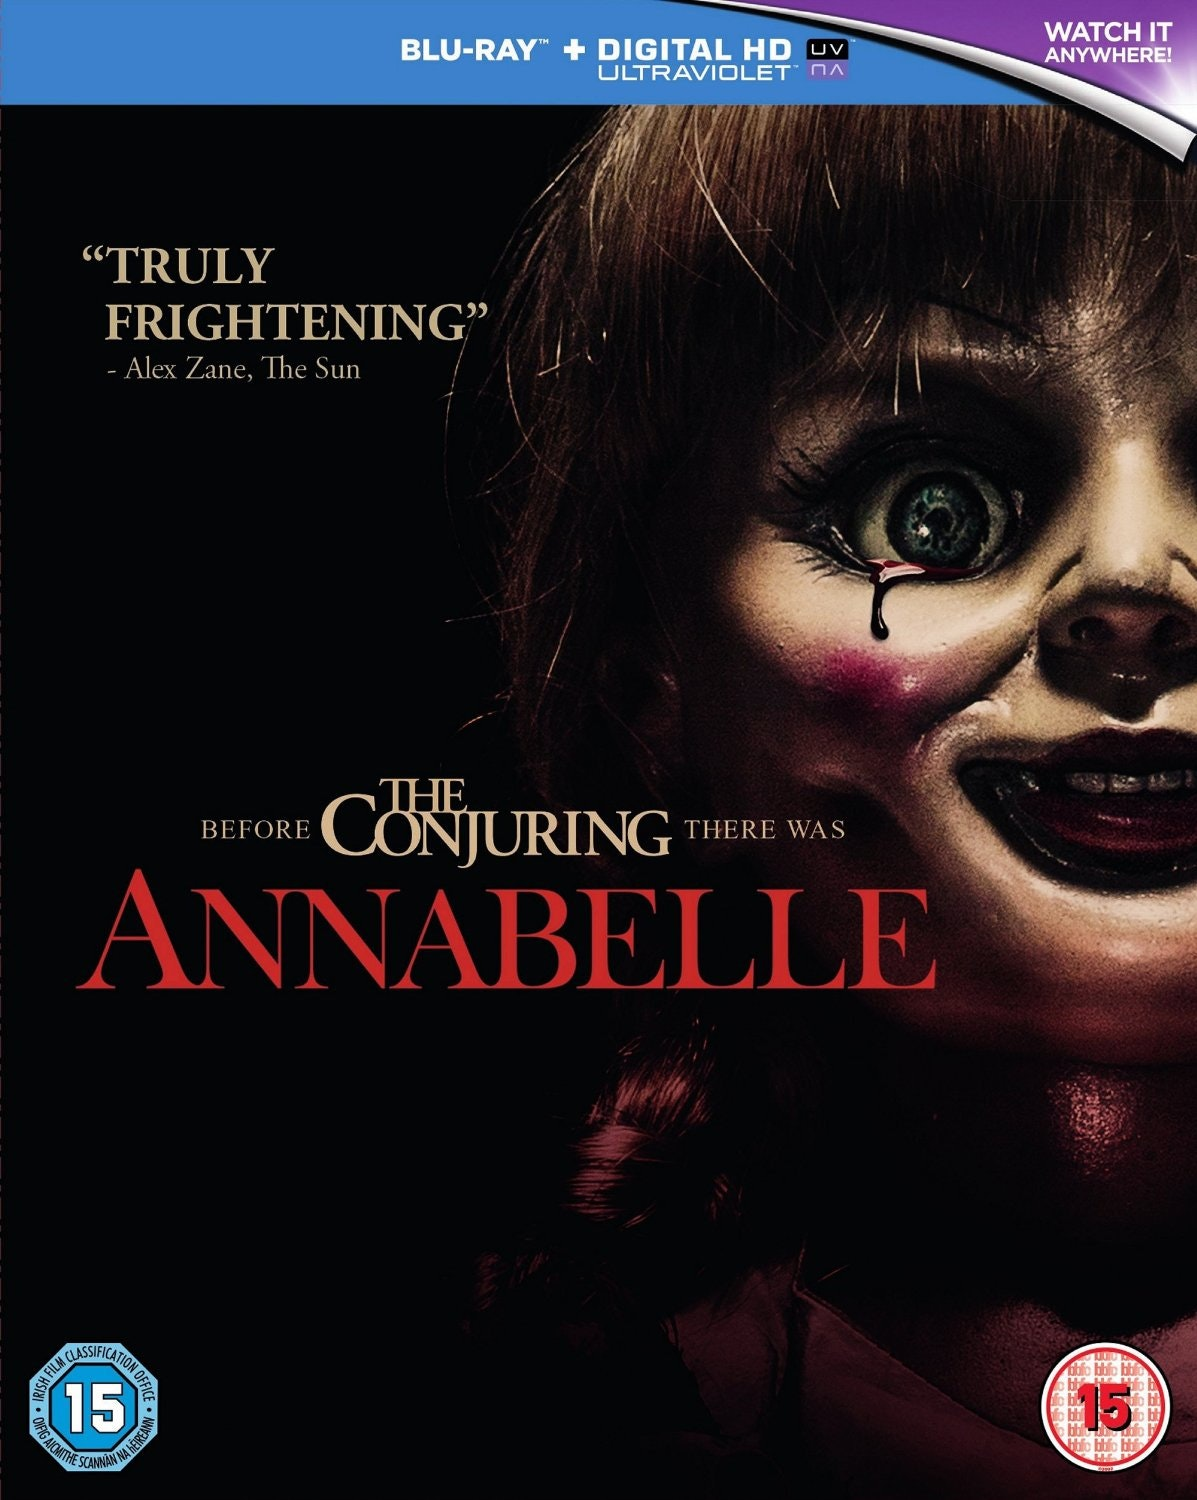 Annabelle Blu-ray  sweepstakes